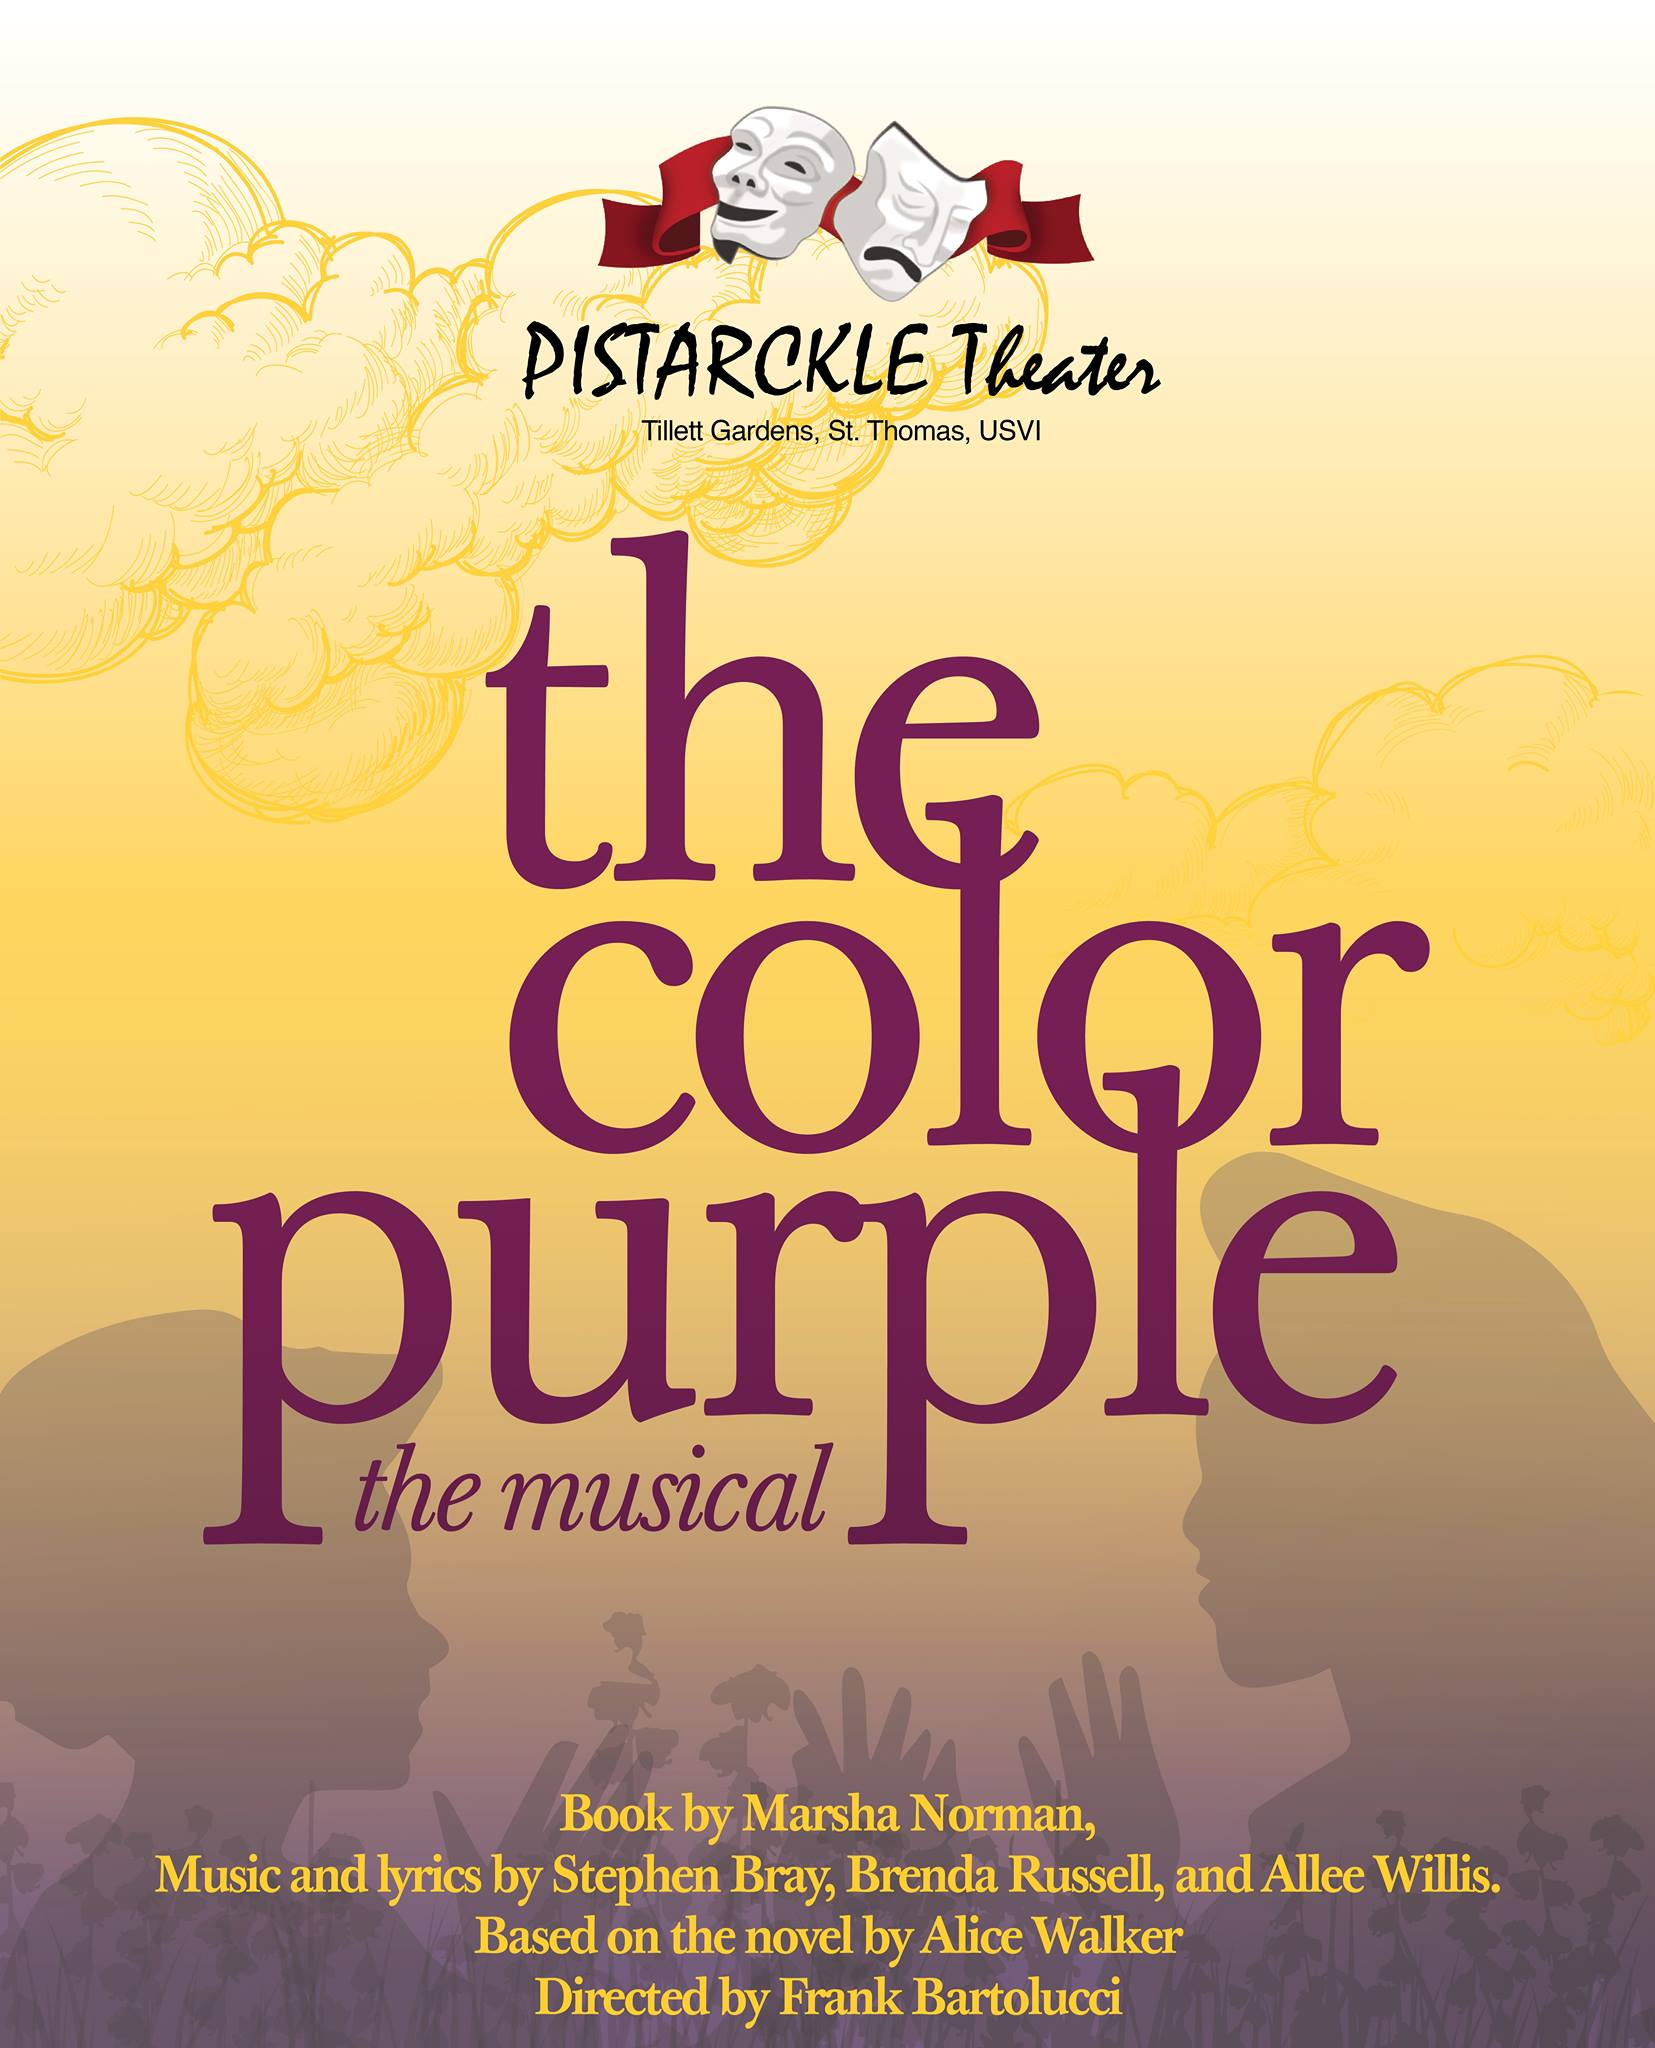 The Color Purple – The Musical comes to Pistarckle Theater ...